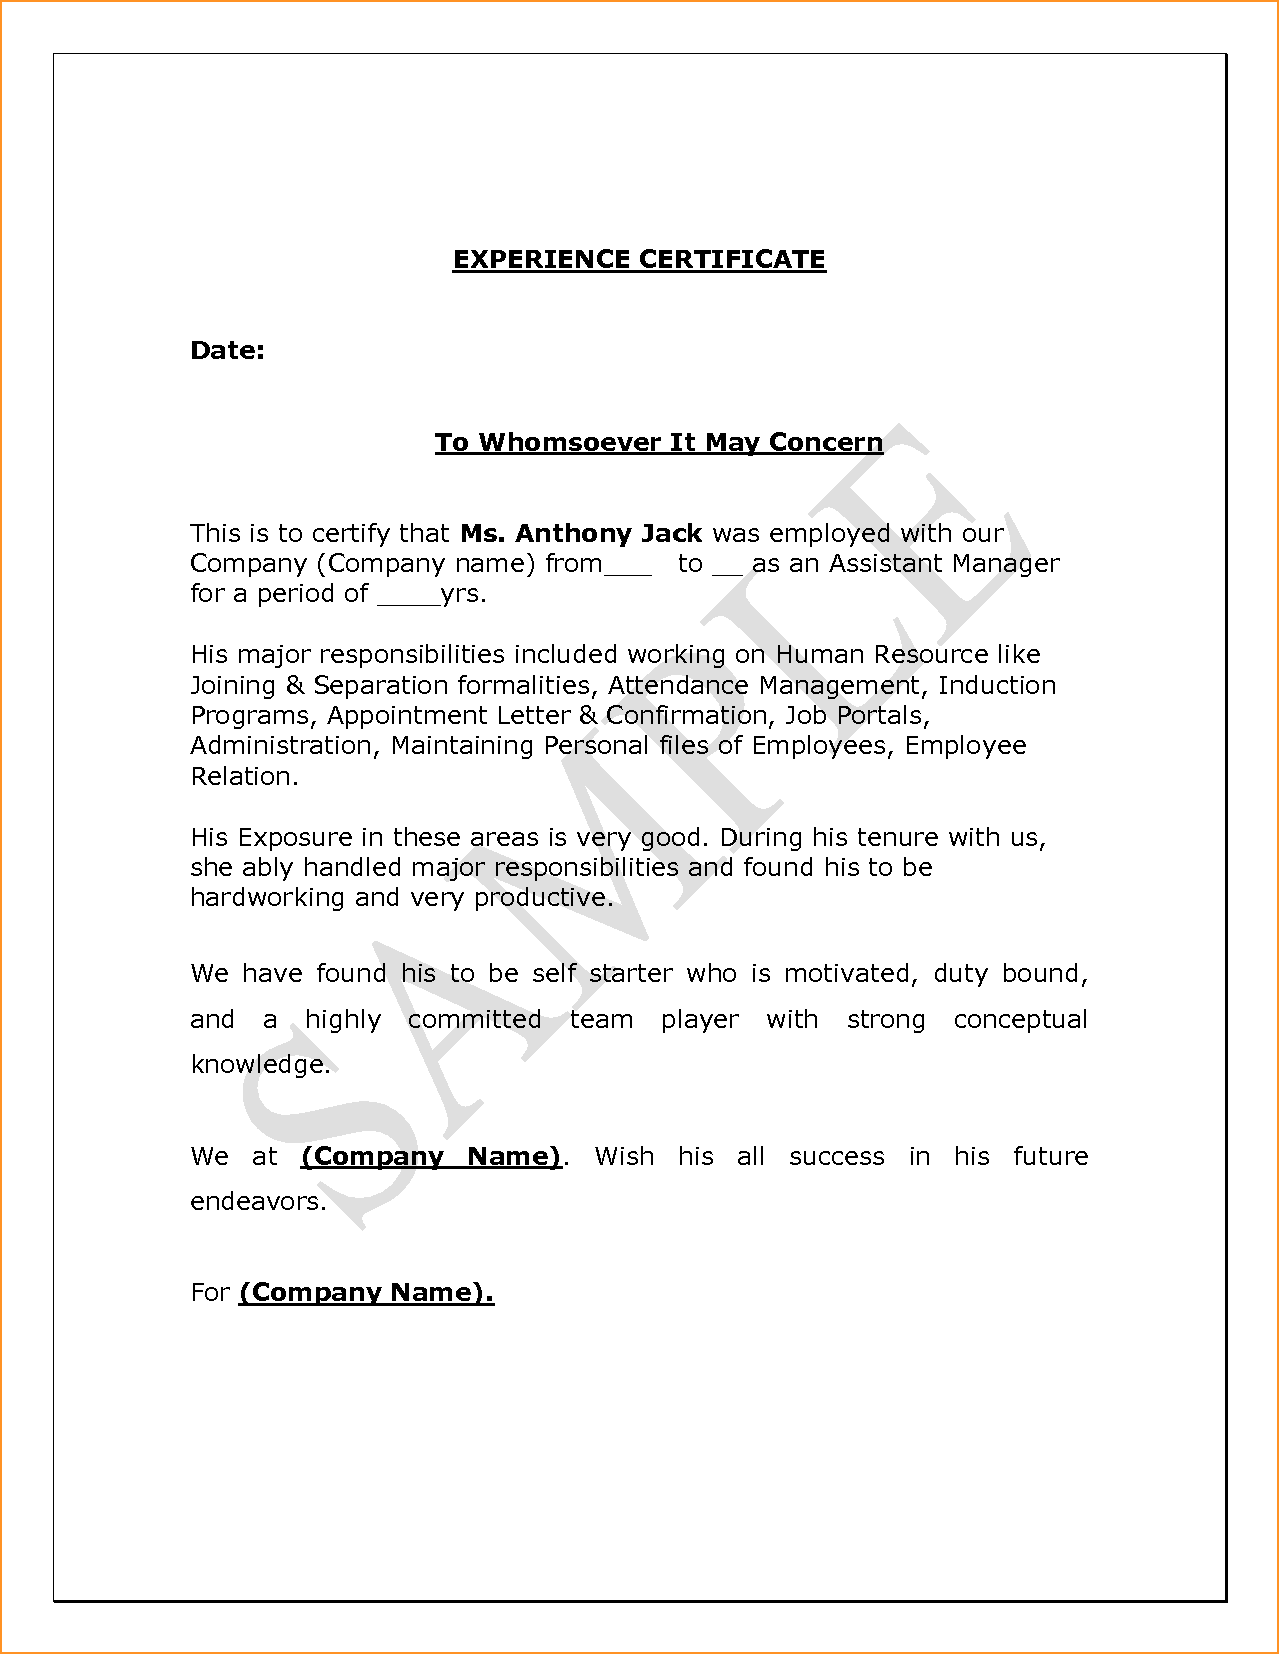 Employment Separation Certificate Form Inspiration Letter Format Experience Appointment Sample For Excel Pdf And Word .